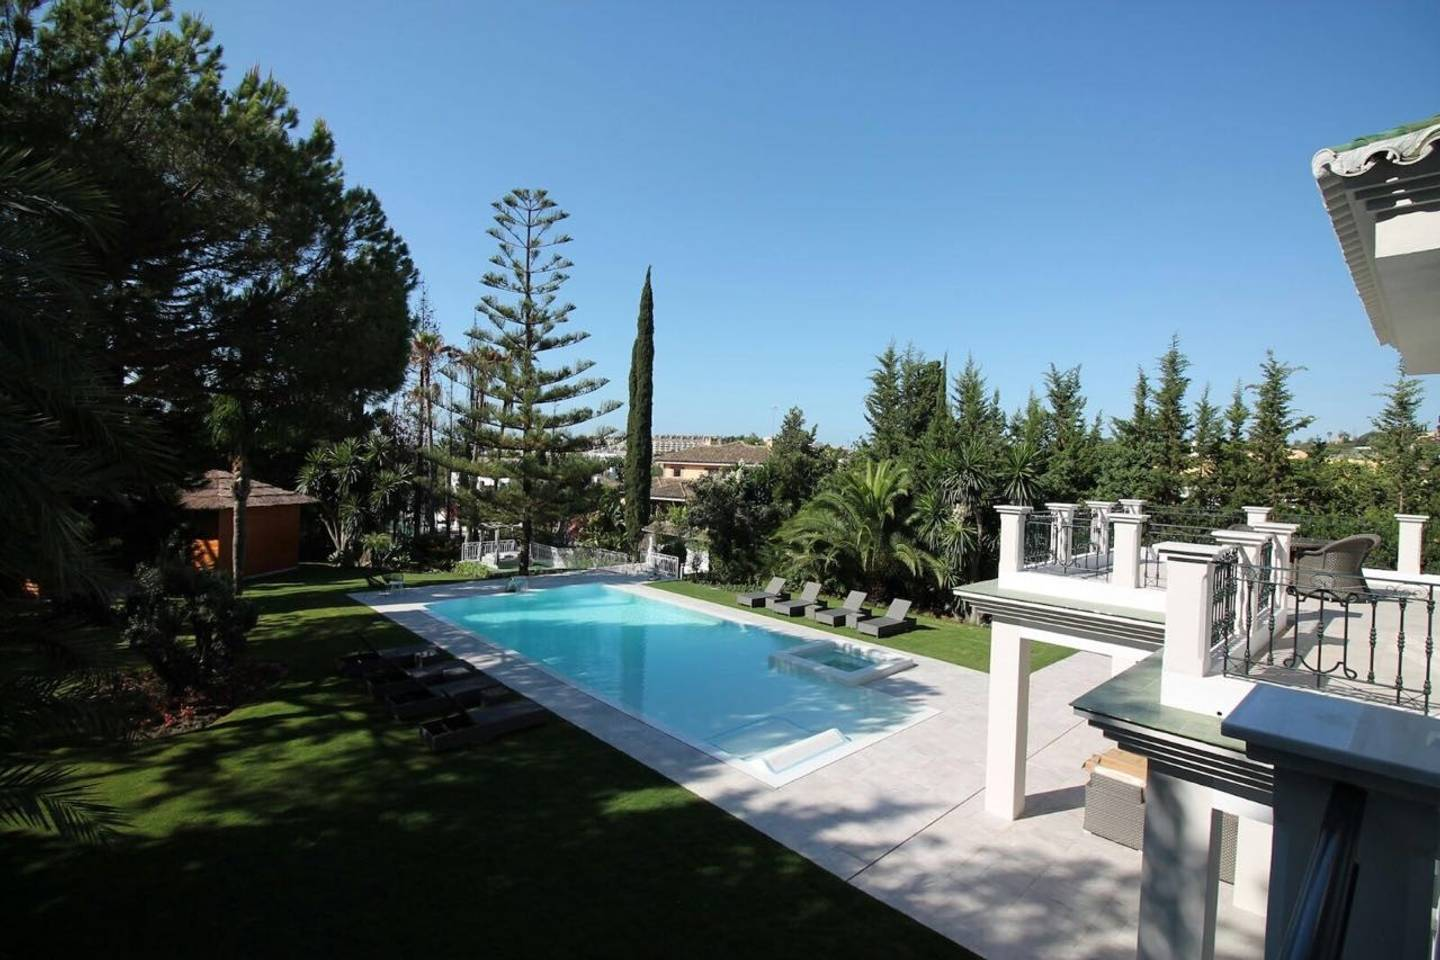 Apartment CHIC Spanish Villa pool   spa next to golf cours photo 28511020